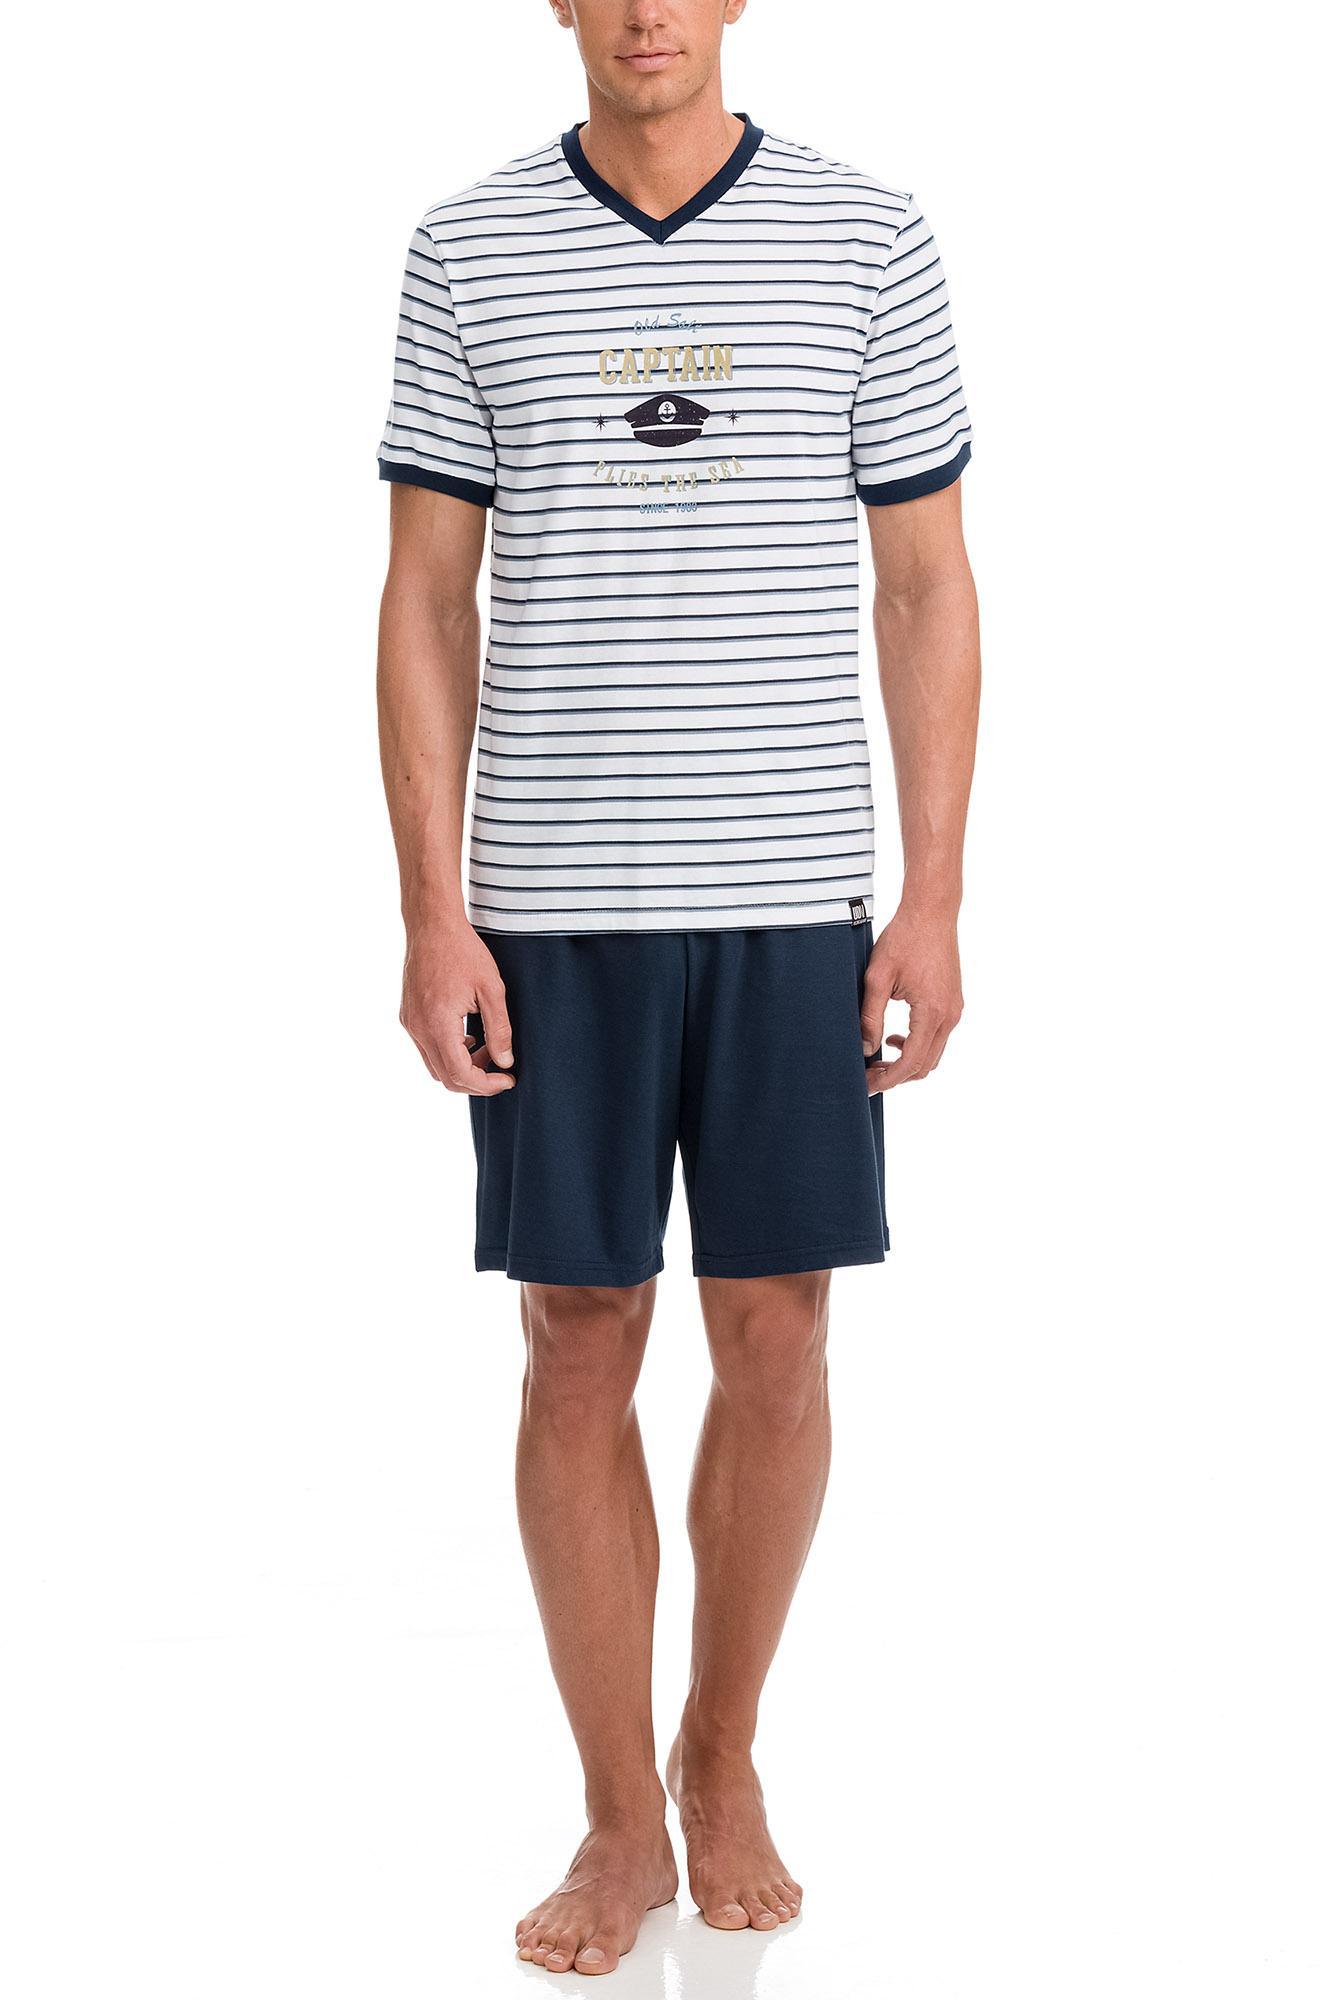 Men's Striped Pyjamas